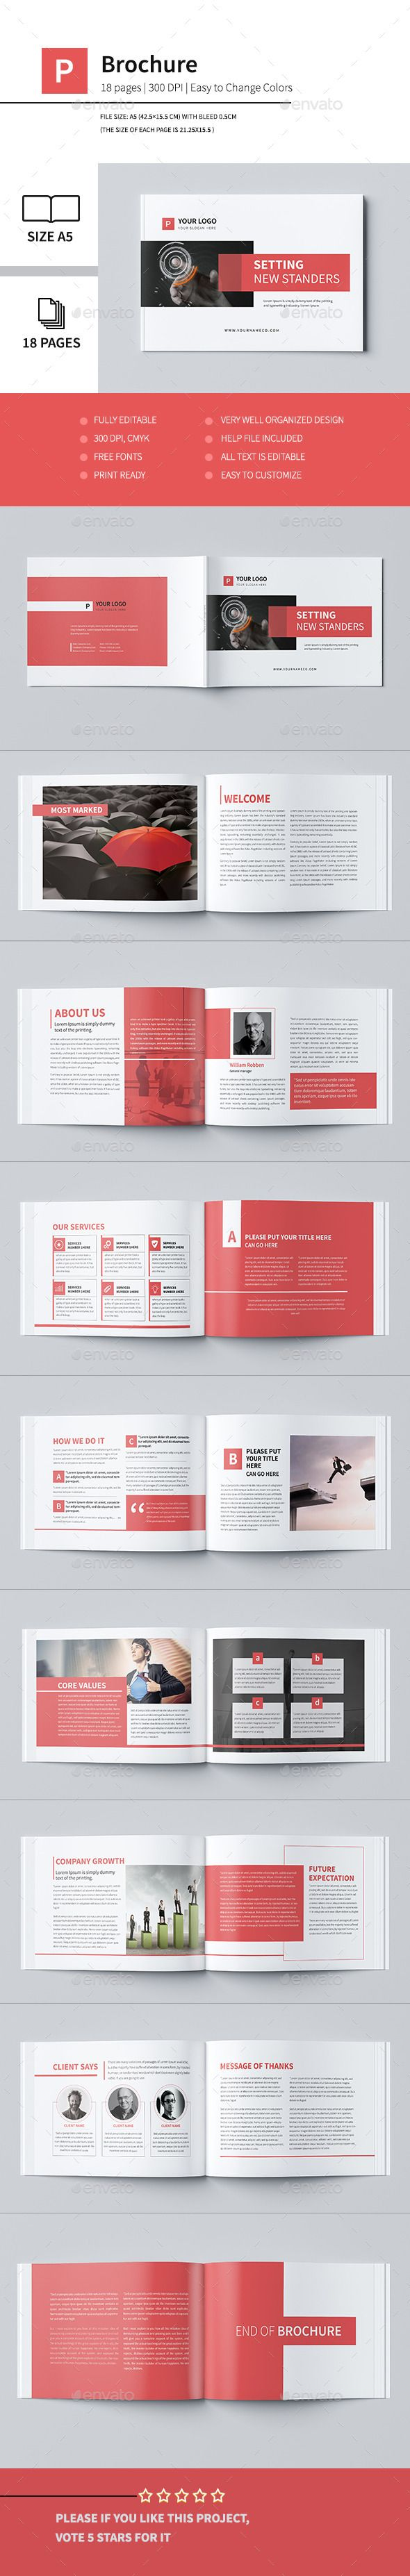 Minimal Business Brochure Template #brochure #design Download: http://graphicriver.net/item/minimal-business-brochure-iv/12598474?ref=ksioks